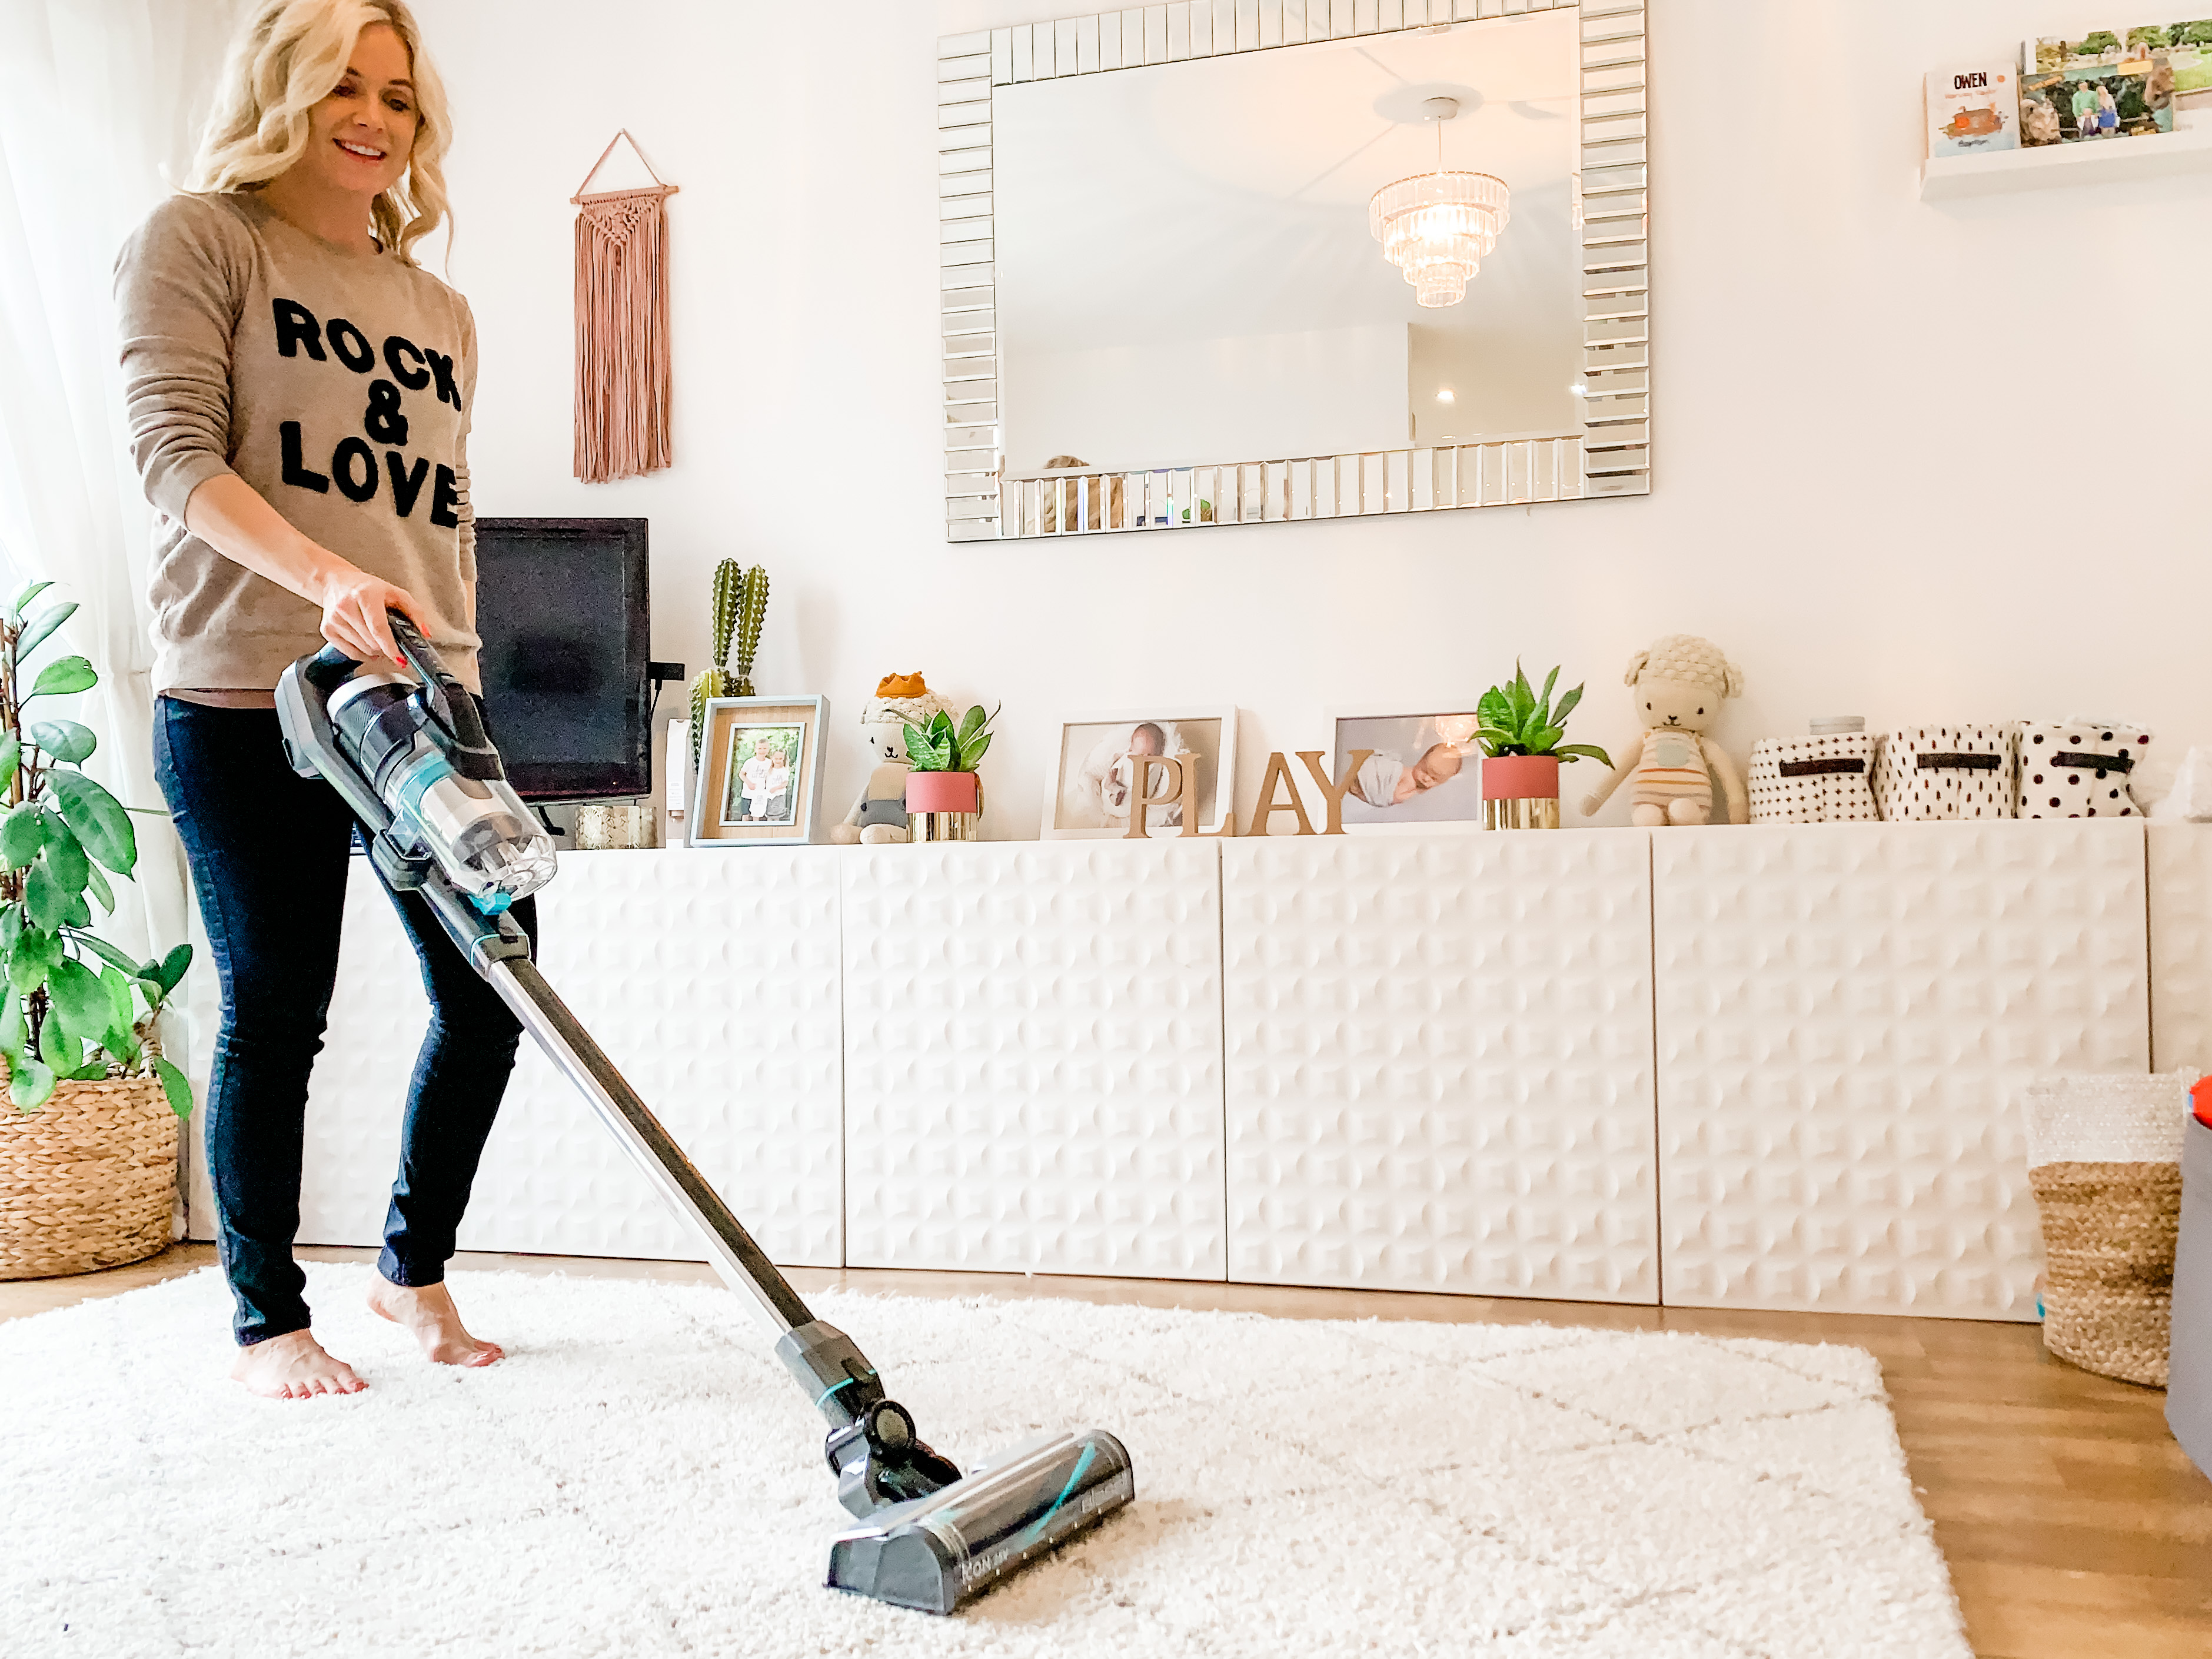 Bissell ICON Cordless 25V Vacuum review